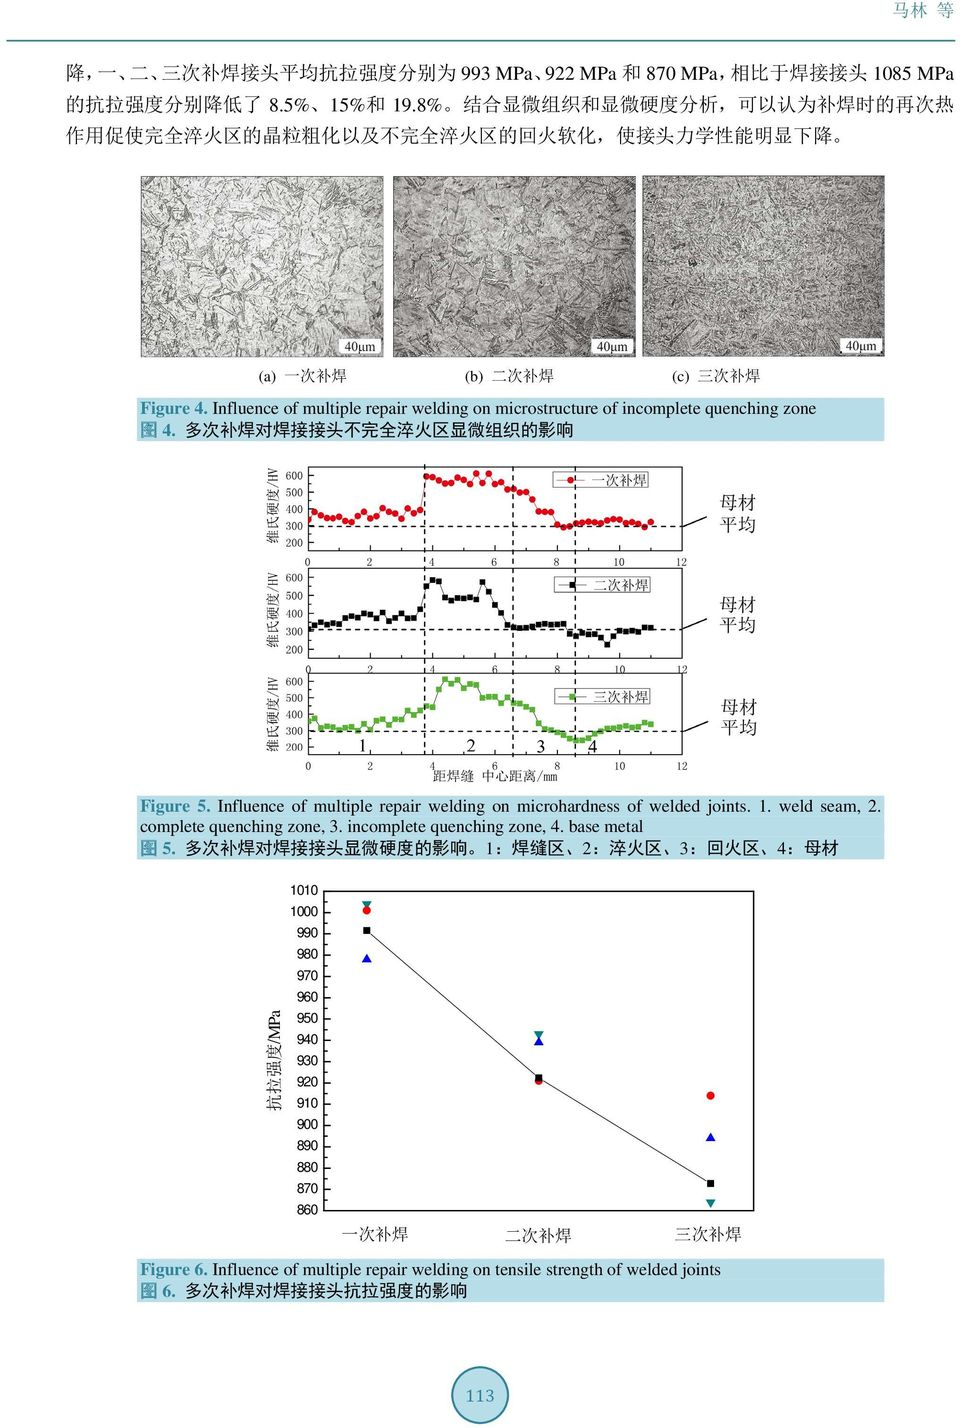 Influence of multiple repair welding on microstructure of incomplete quenching zone 图 4. 多 次 补 焊 对 焊 接 接 头 不 完 全 淬 火 区 显 微 组 织 的 影 响 Figure 5.